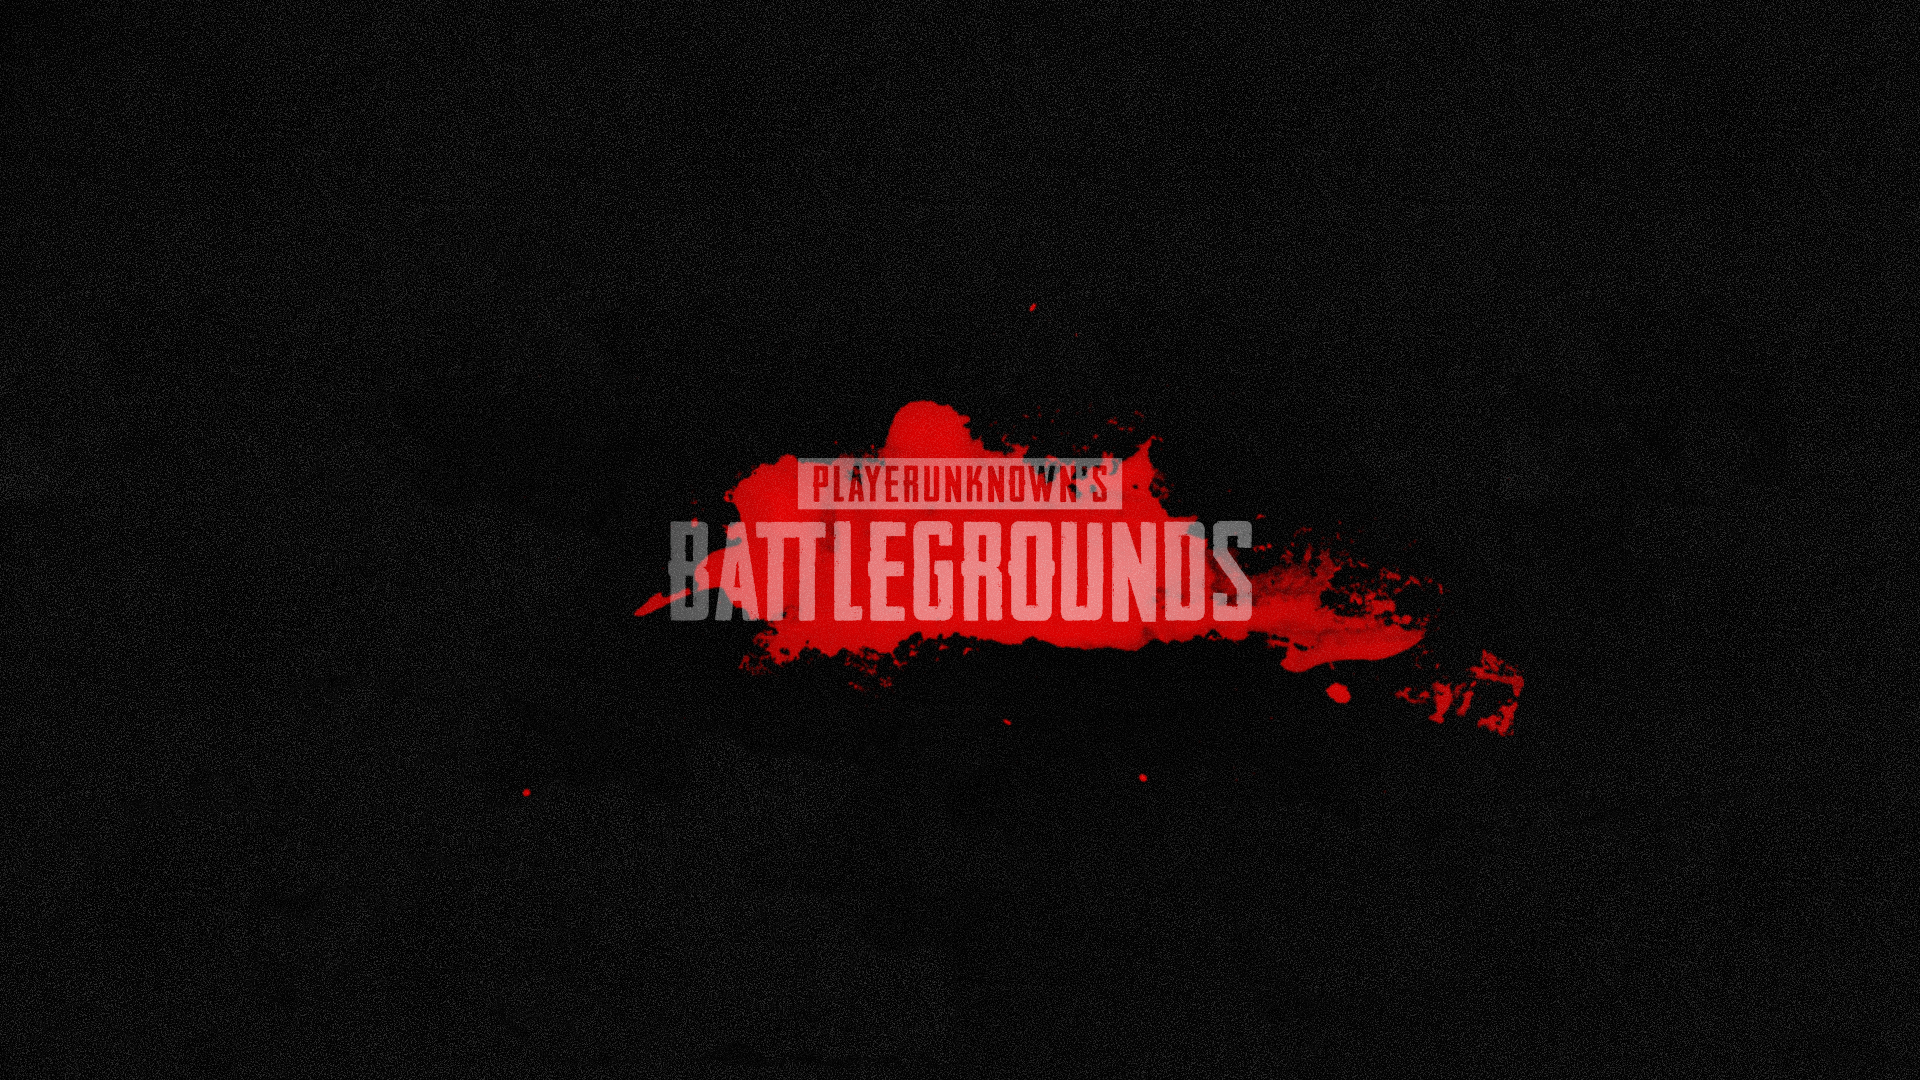 Pubg Hd Wallpaper Iphone: Player Unknown's Battlegrounds (PUBG) 4K Red Logo Pubg